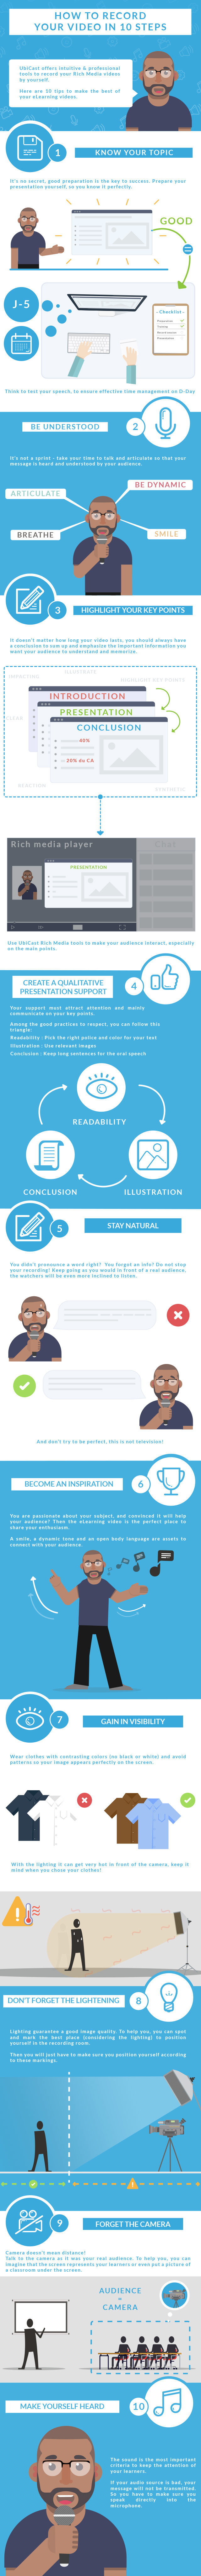 How to record your video in 10 steps in infographics